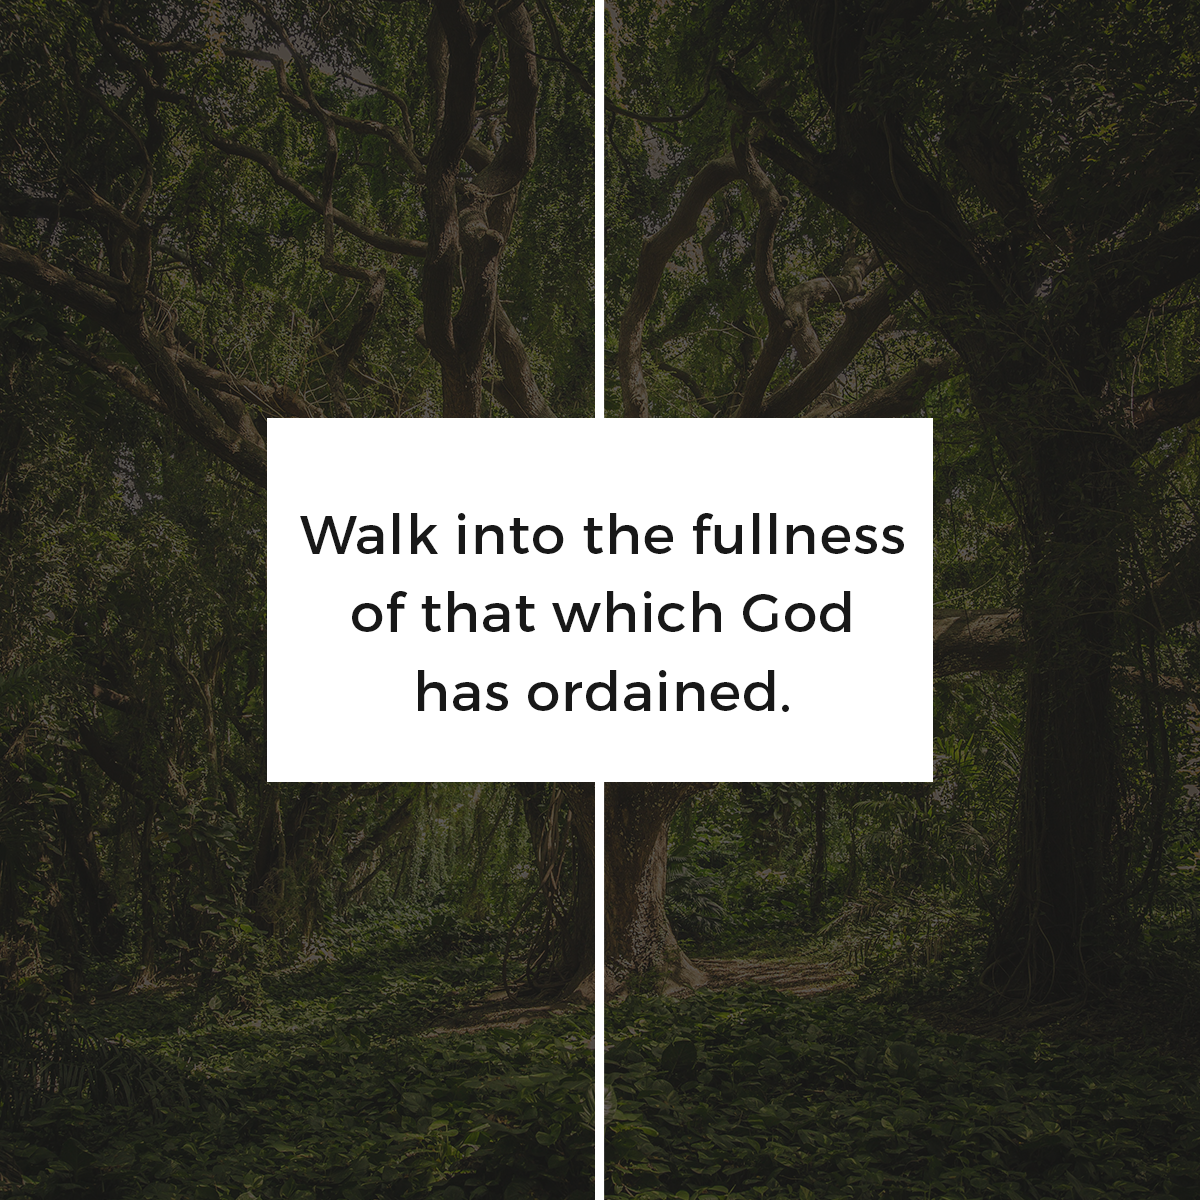 Rediscover your God-ordained purpose. Walk in the fullness for which He has created you! #ThursdayThoughts #Purpose